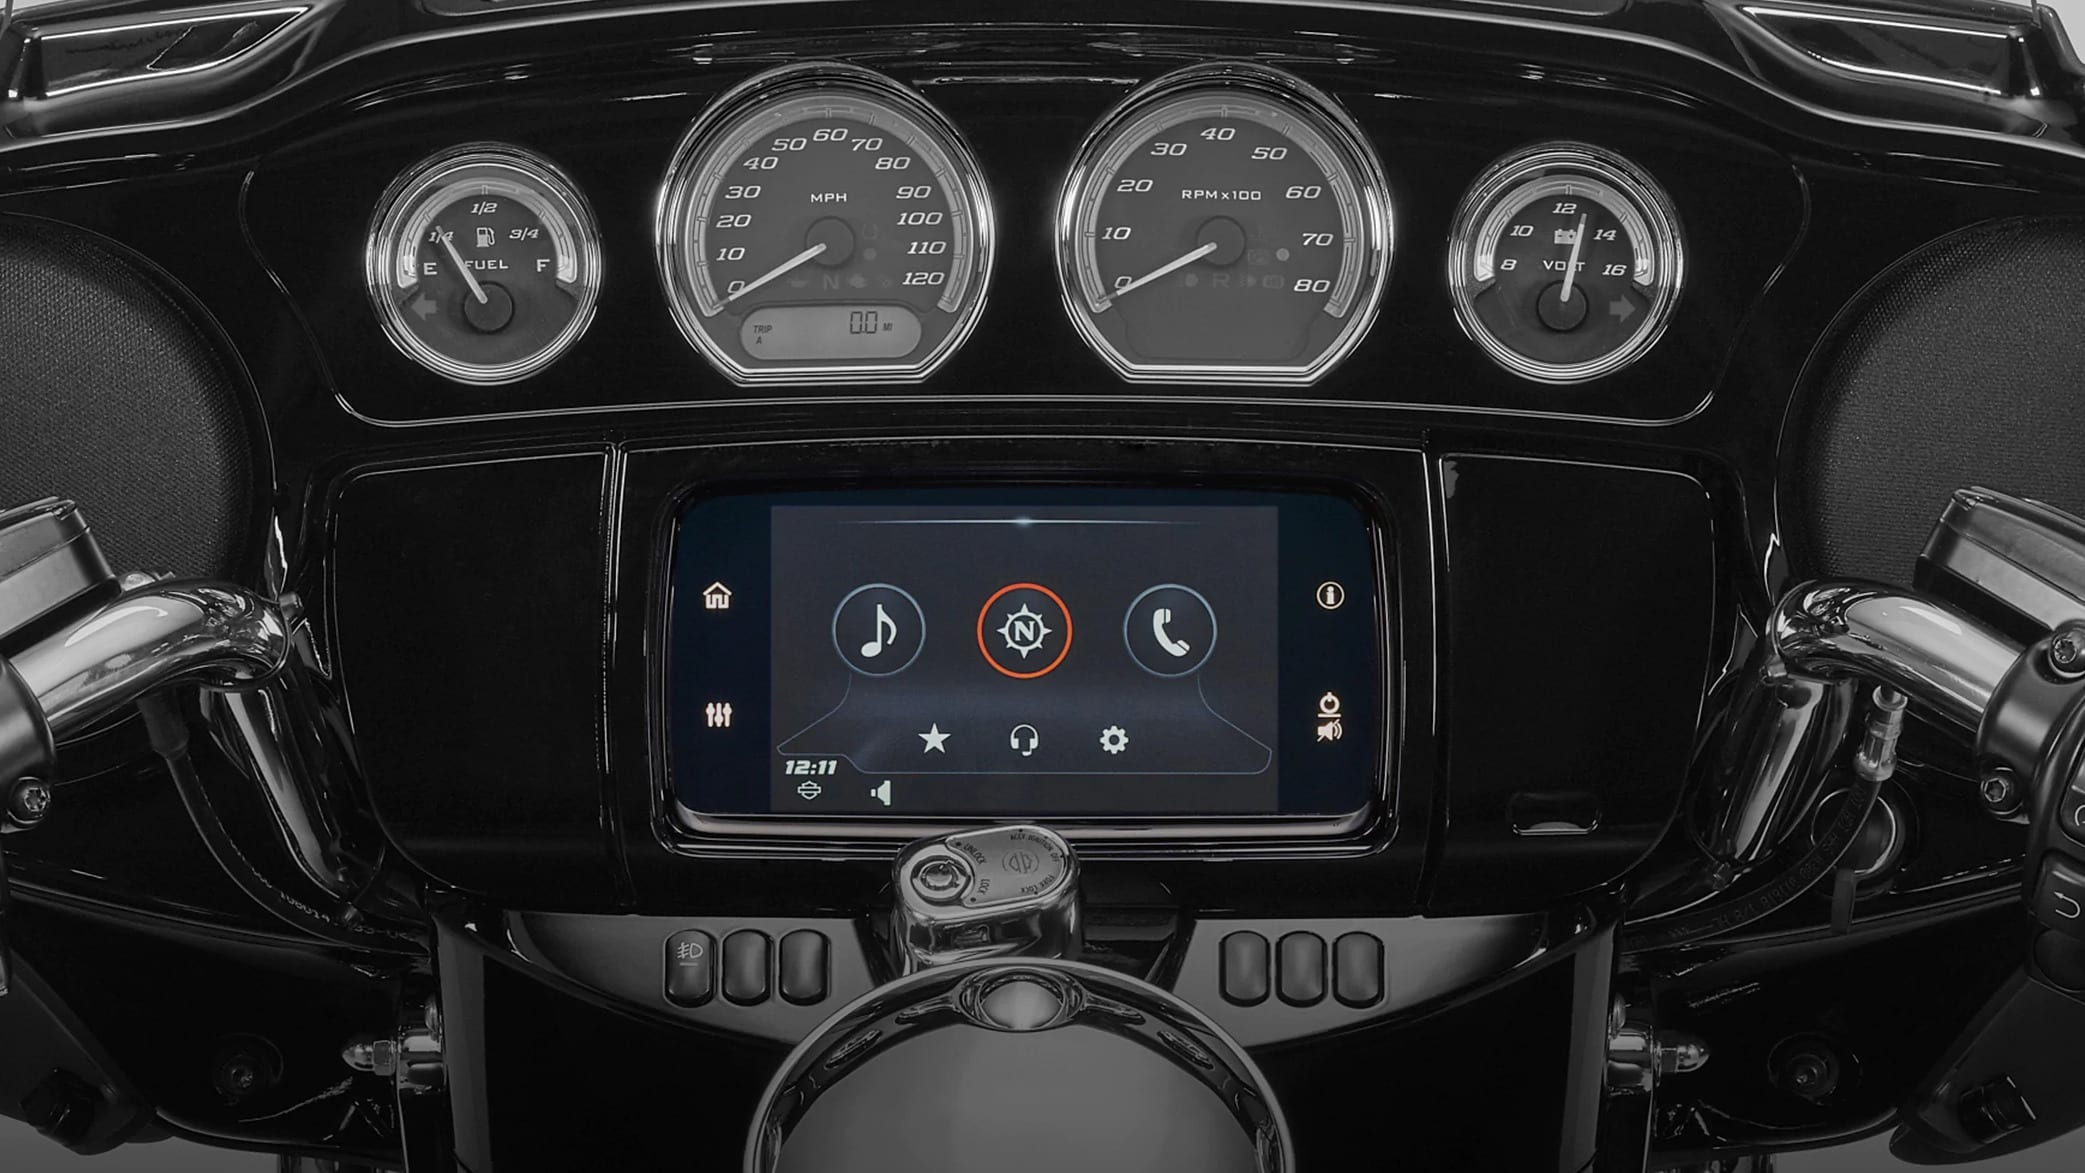 Android Auto arriva sulle Harley-Davidson